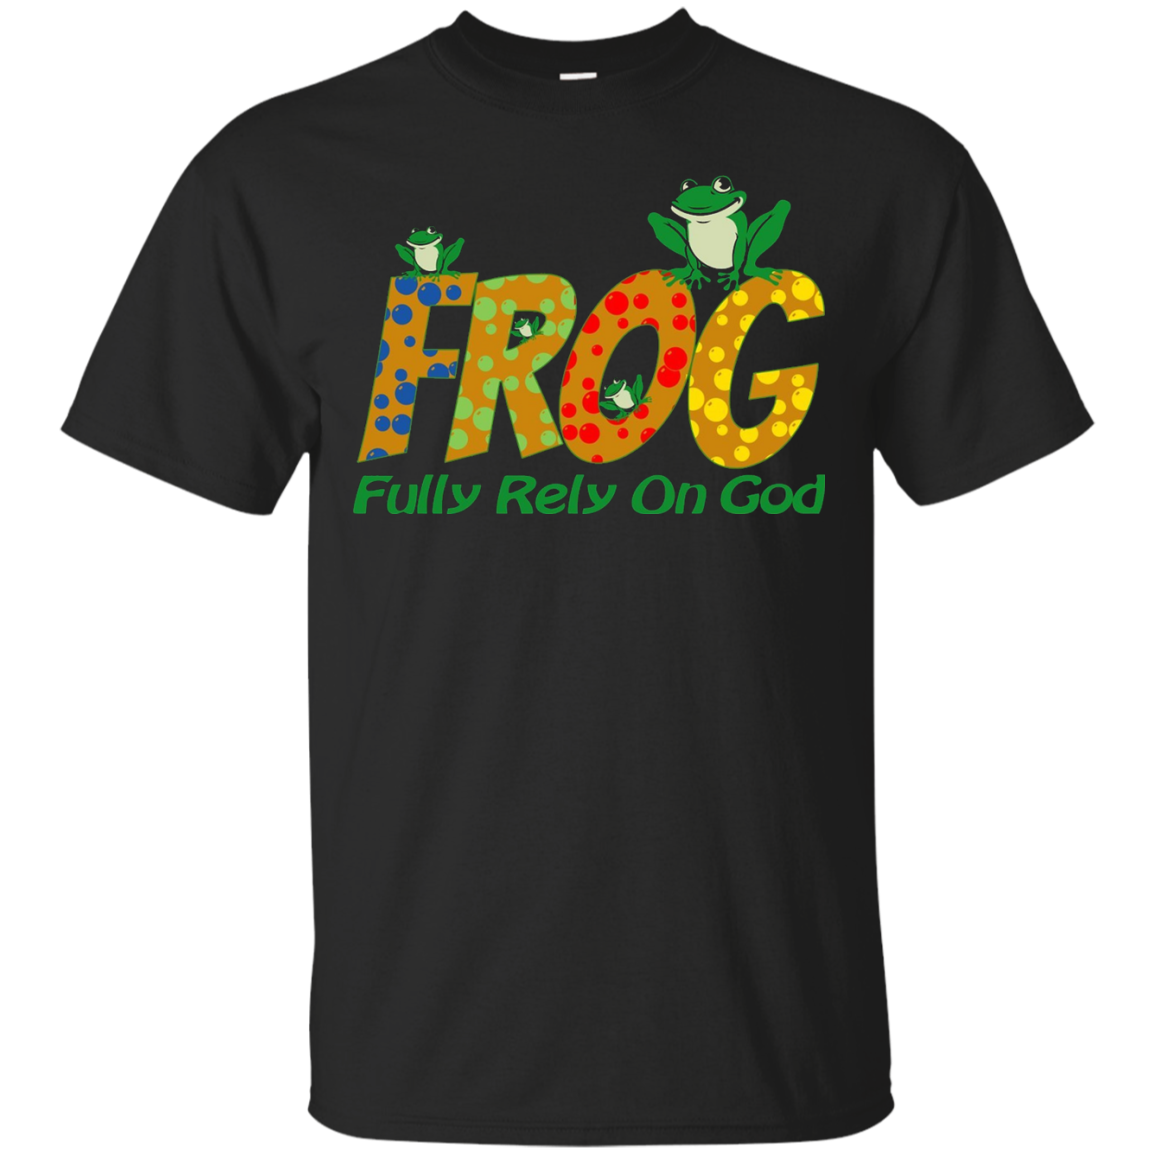 FROG Fully Rely On God Faith Religion Belief Christ T-Shirt